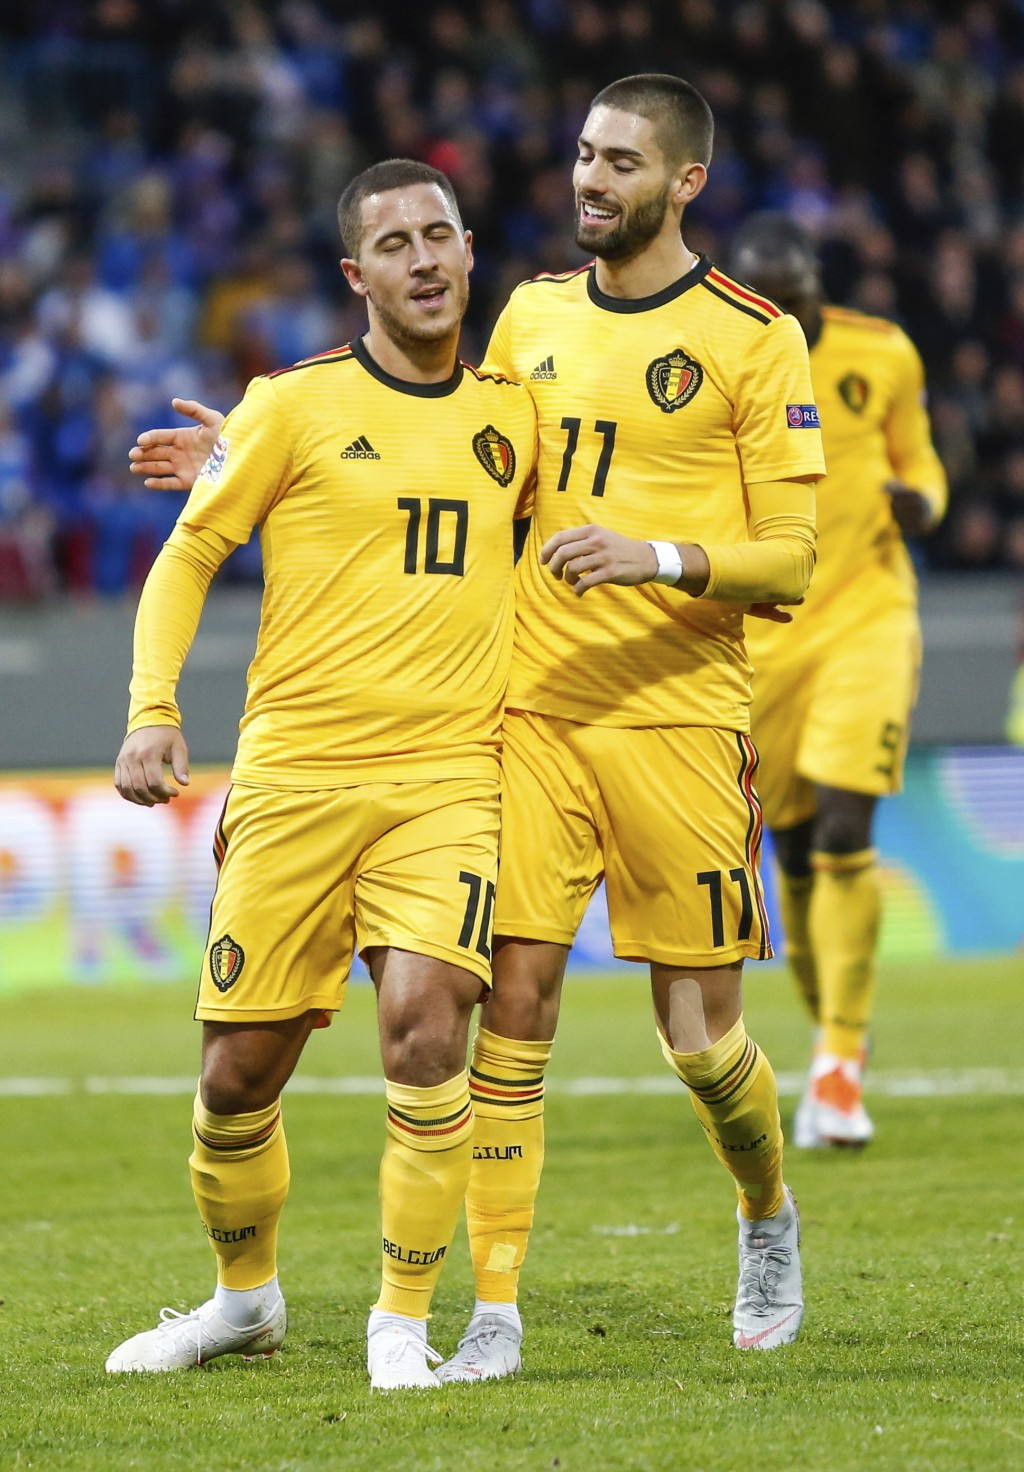 Belgium's Eden Hazard (10), left, celebrates his goal with Yannick Carrasco (11), right, during the UEFA Nations League soccer match between Iceland a